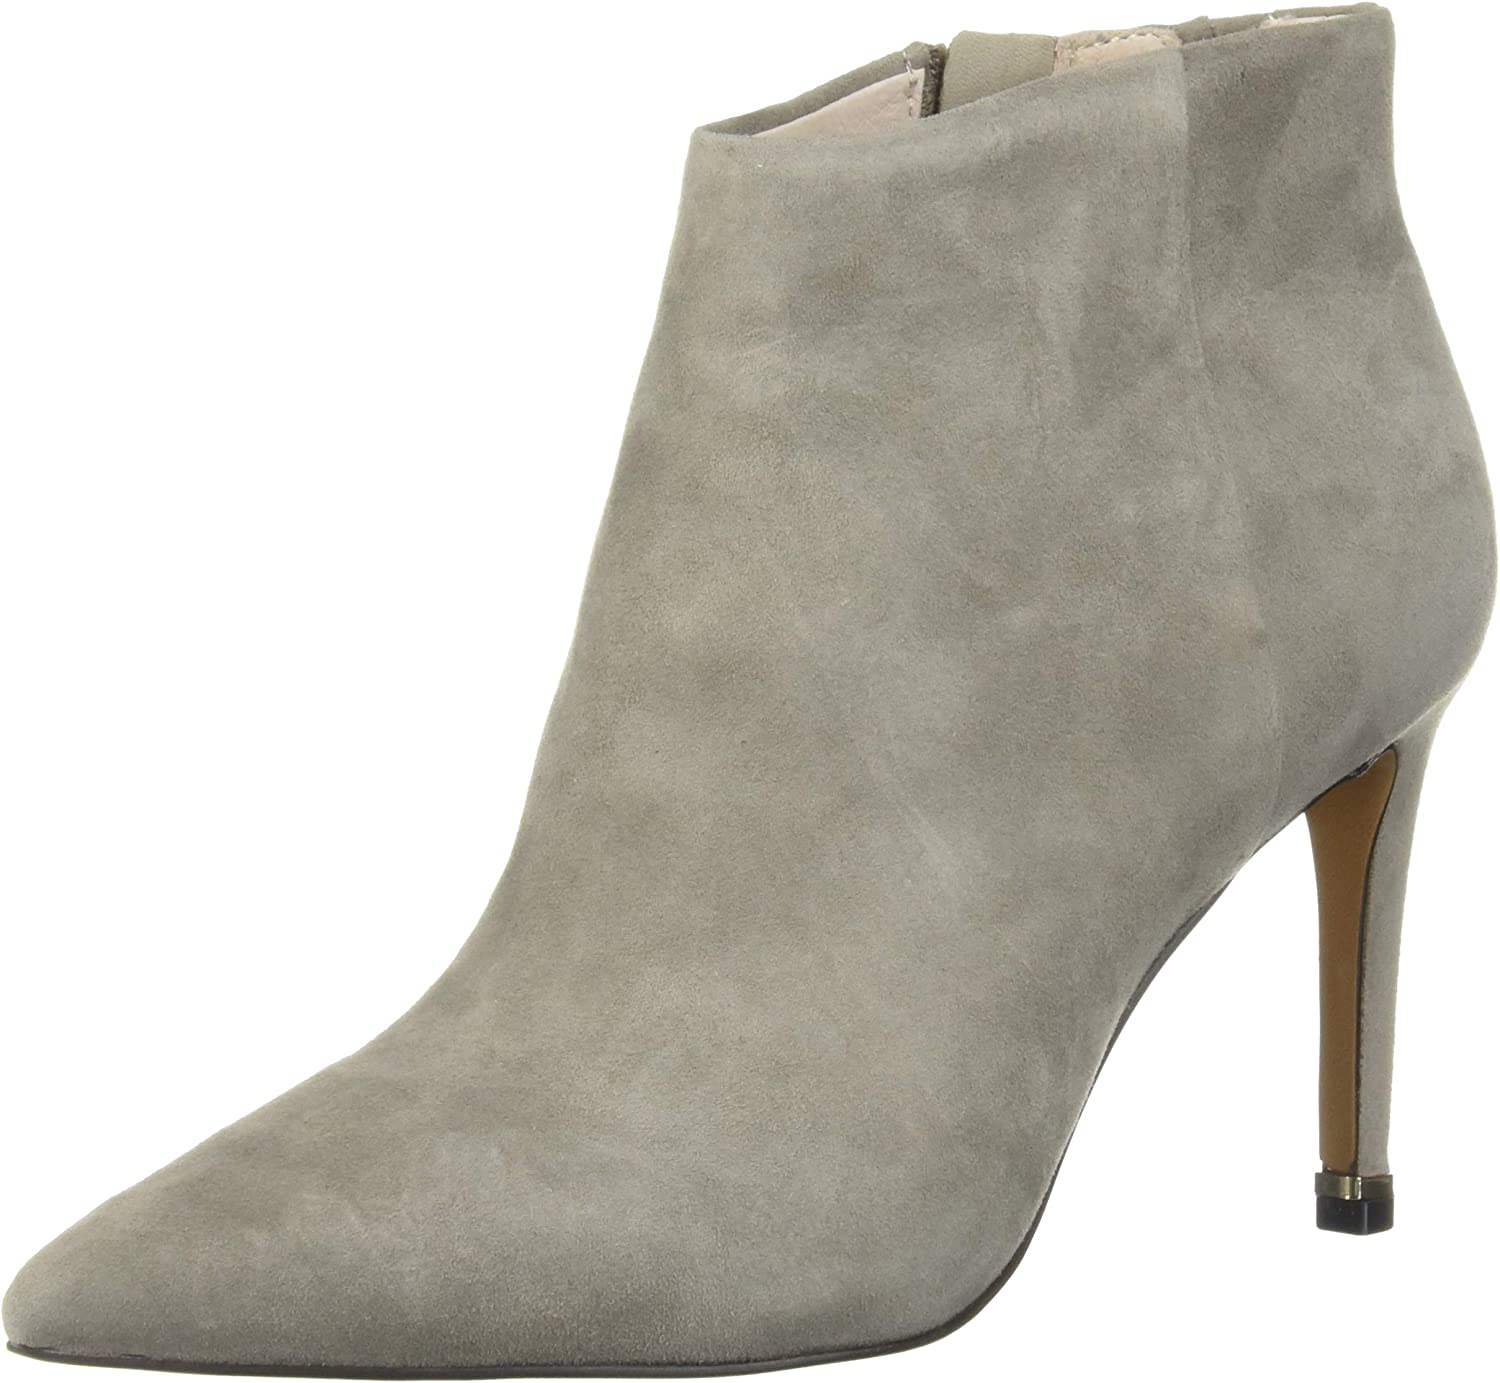 Kenneth Cole New York Womens Riley 85 Mm Heel Ankle Bootie Ankle Boot